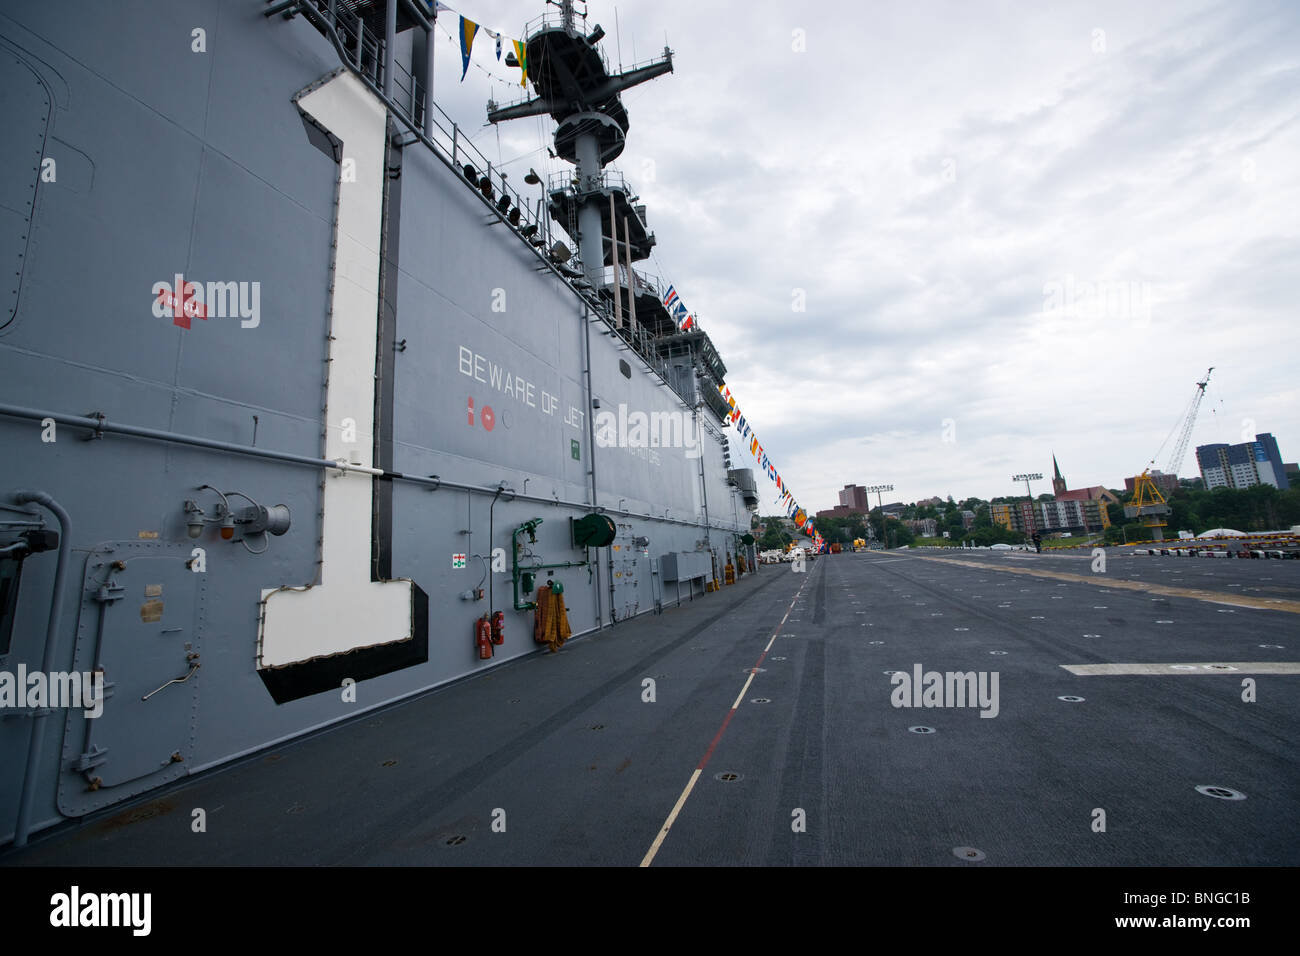 The island and flight deck of the US Navy's amphibious assault ship USS WASP during the 2010 Fleet Review in Halifax, Stock Photo